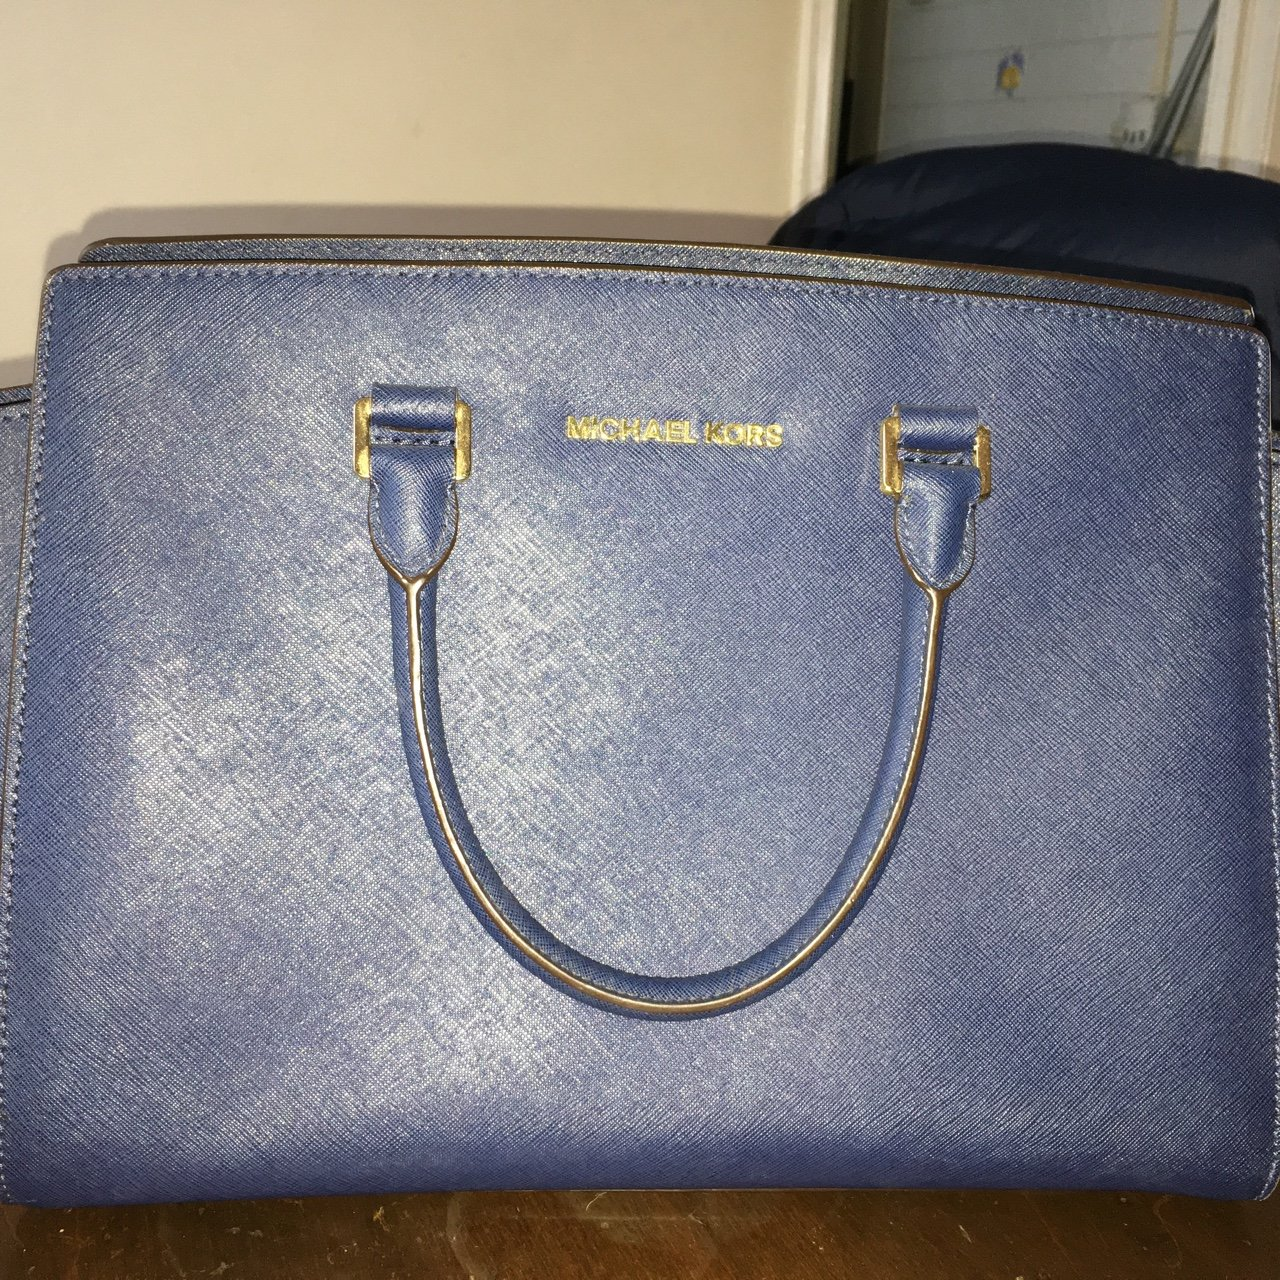 8c2bab189250 AUTHENTIC Michael Kors Navy bag. Used a handful of times but - Depop